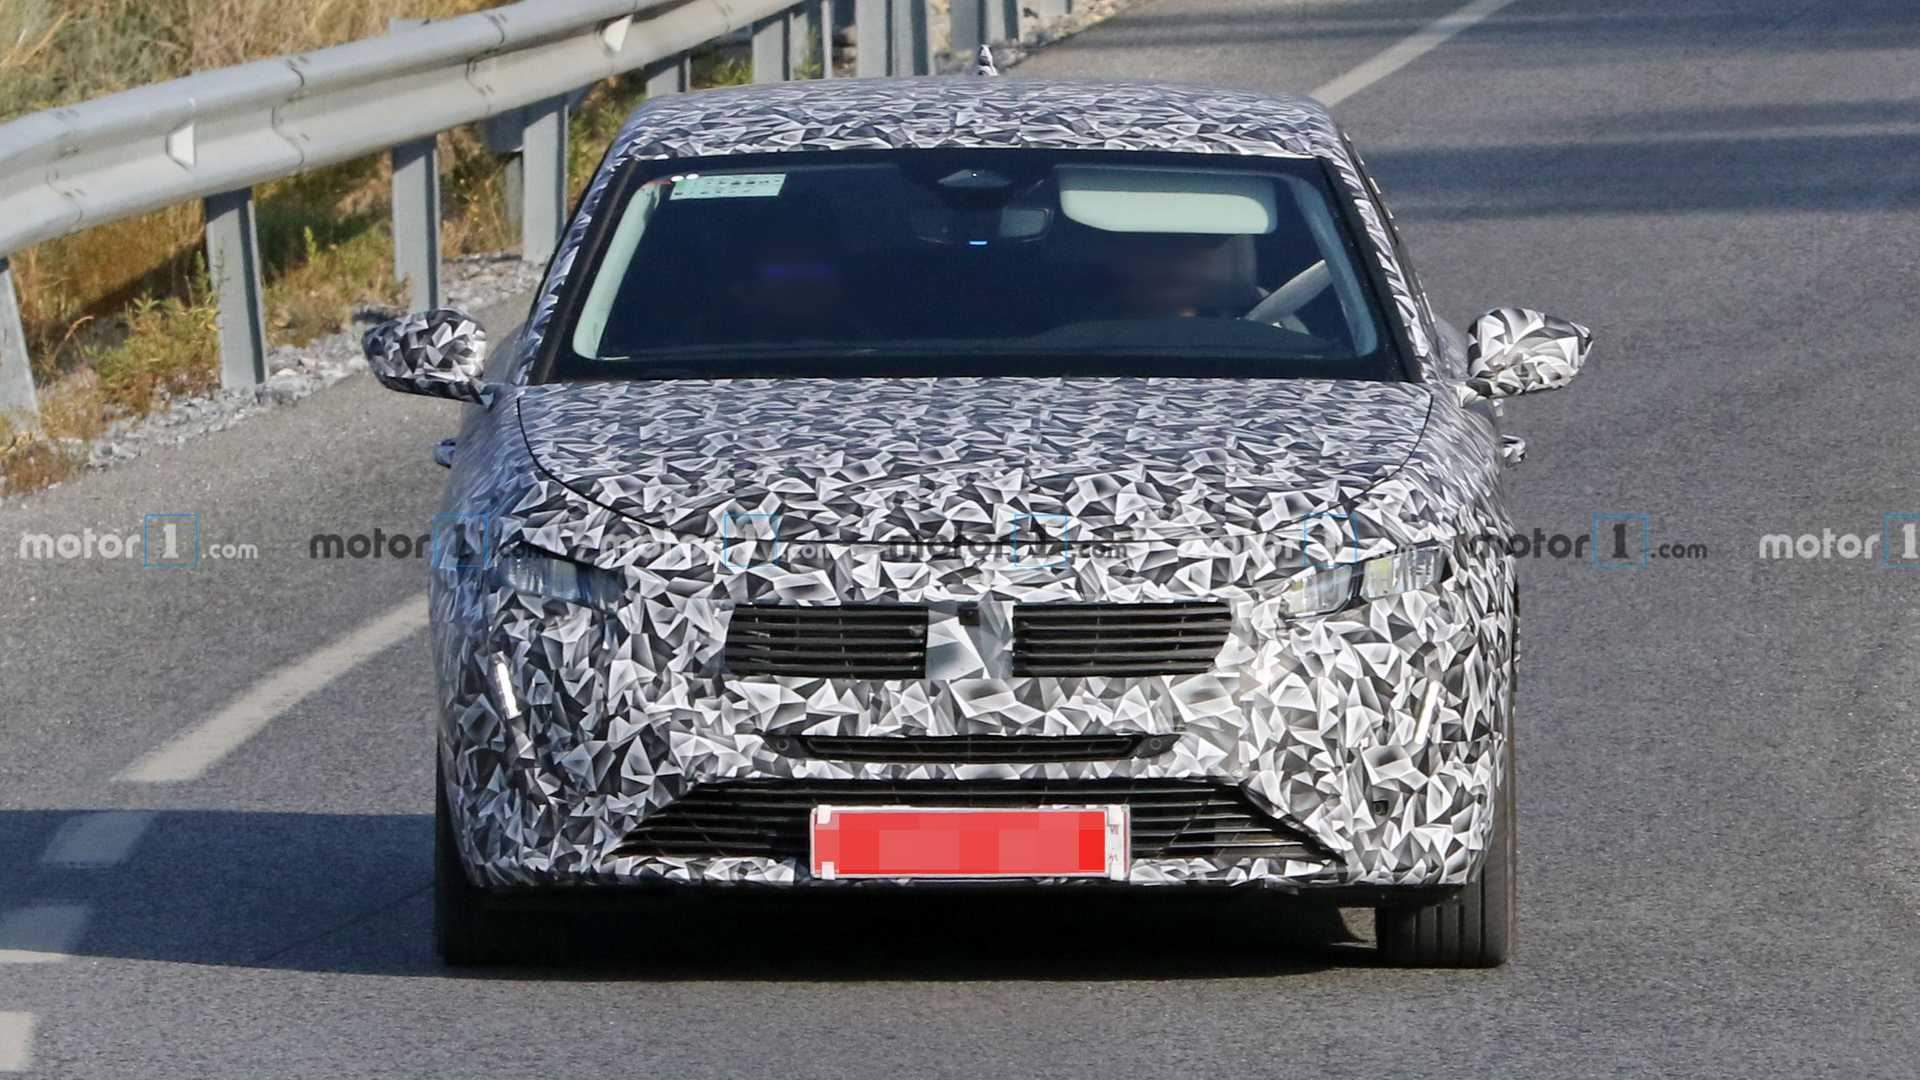 2021 - [Peugeot] 308 III [P51/P52] - Page 33 2022-peugeot-308-grille